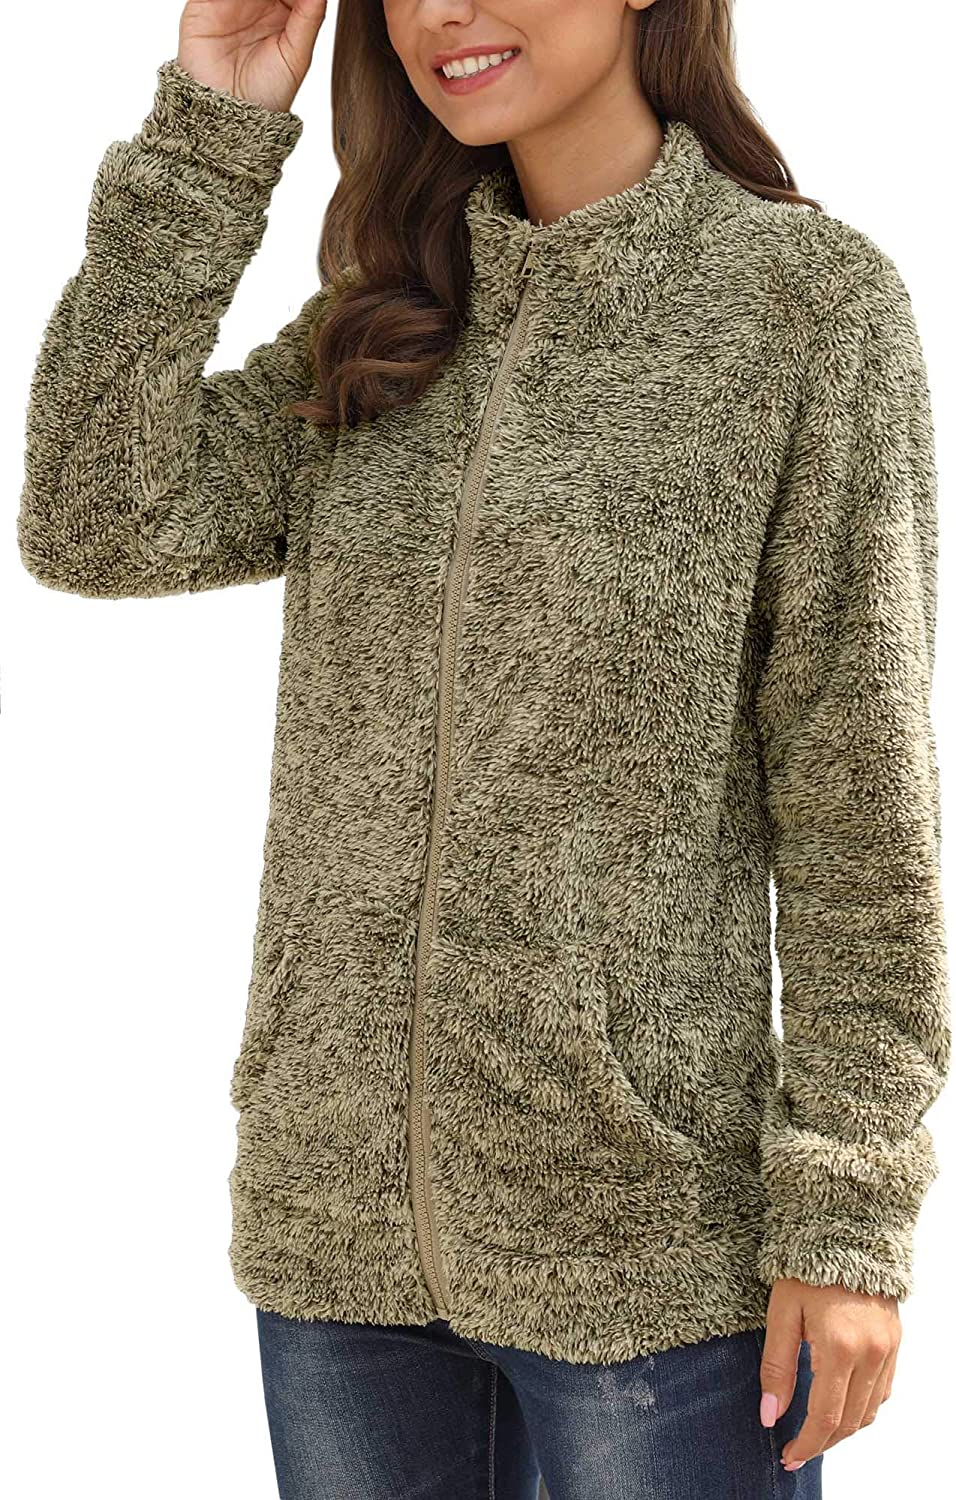 For G and PL Womens Long Sleeve Full Zip Fleece Jacket